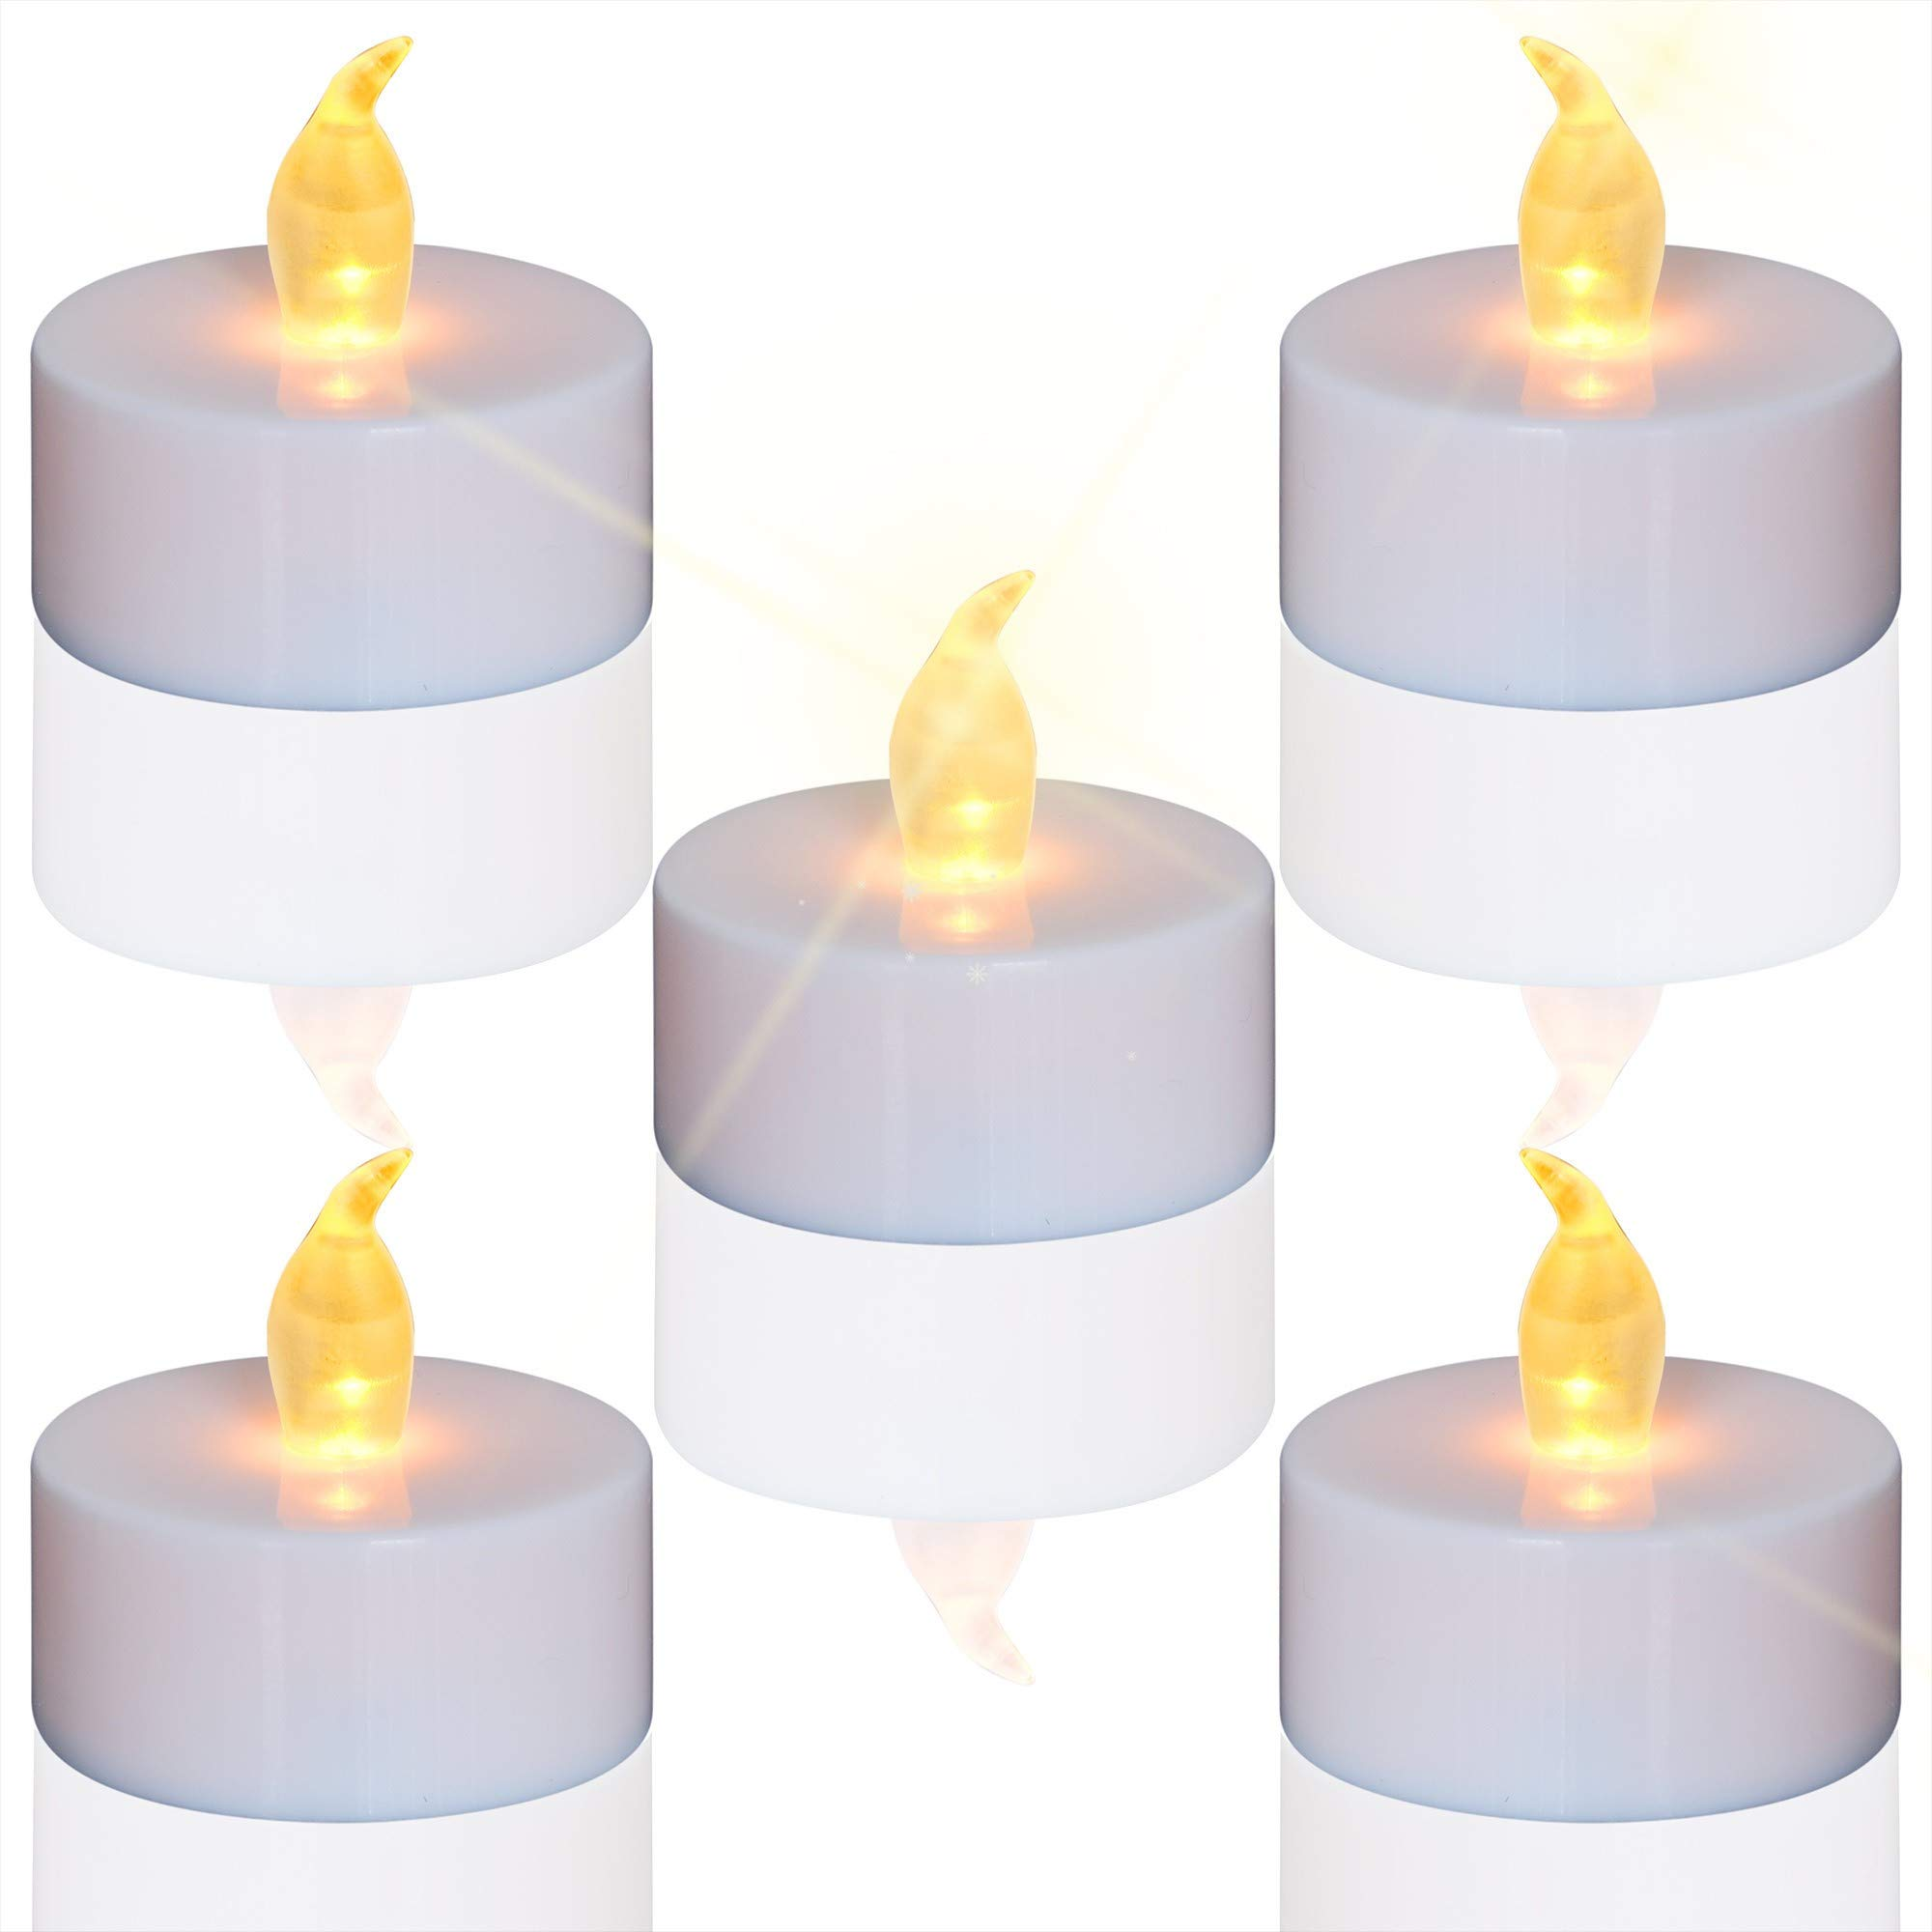 Flameless LED Tea Lights Candles (50 Tea Lights and 1000 PCS Faux Petals), Flickering Warm Yellow, Battery-Powered Tealight Candle, Ideal for Party, Wedding, Birthday, Gifts and Home Decoration